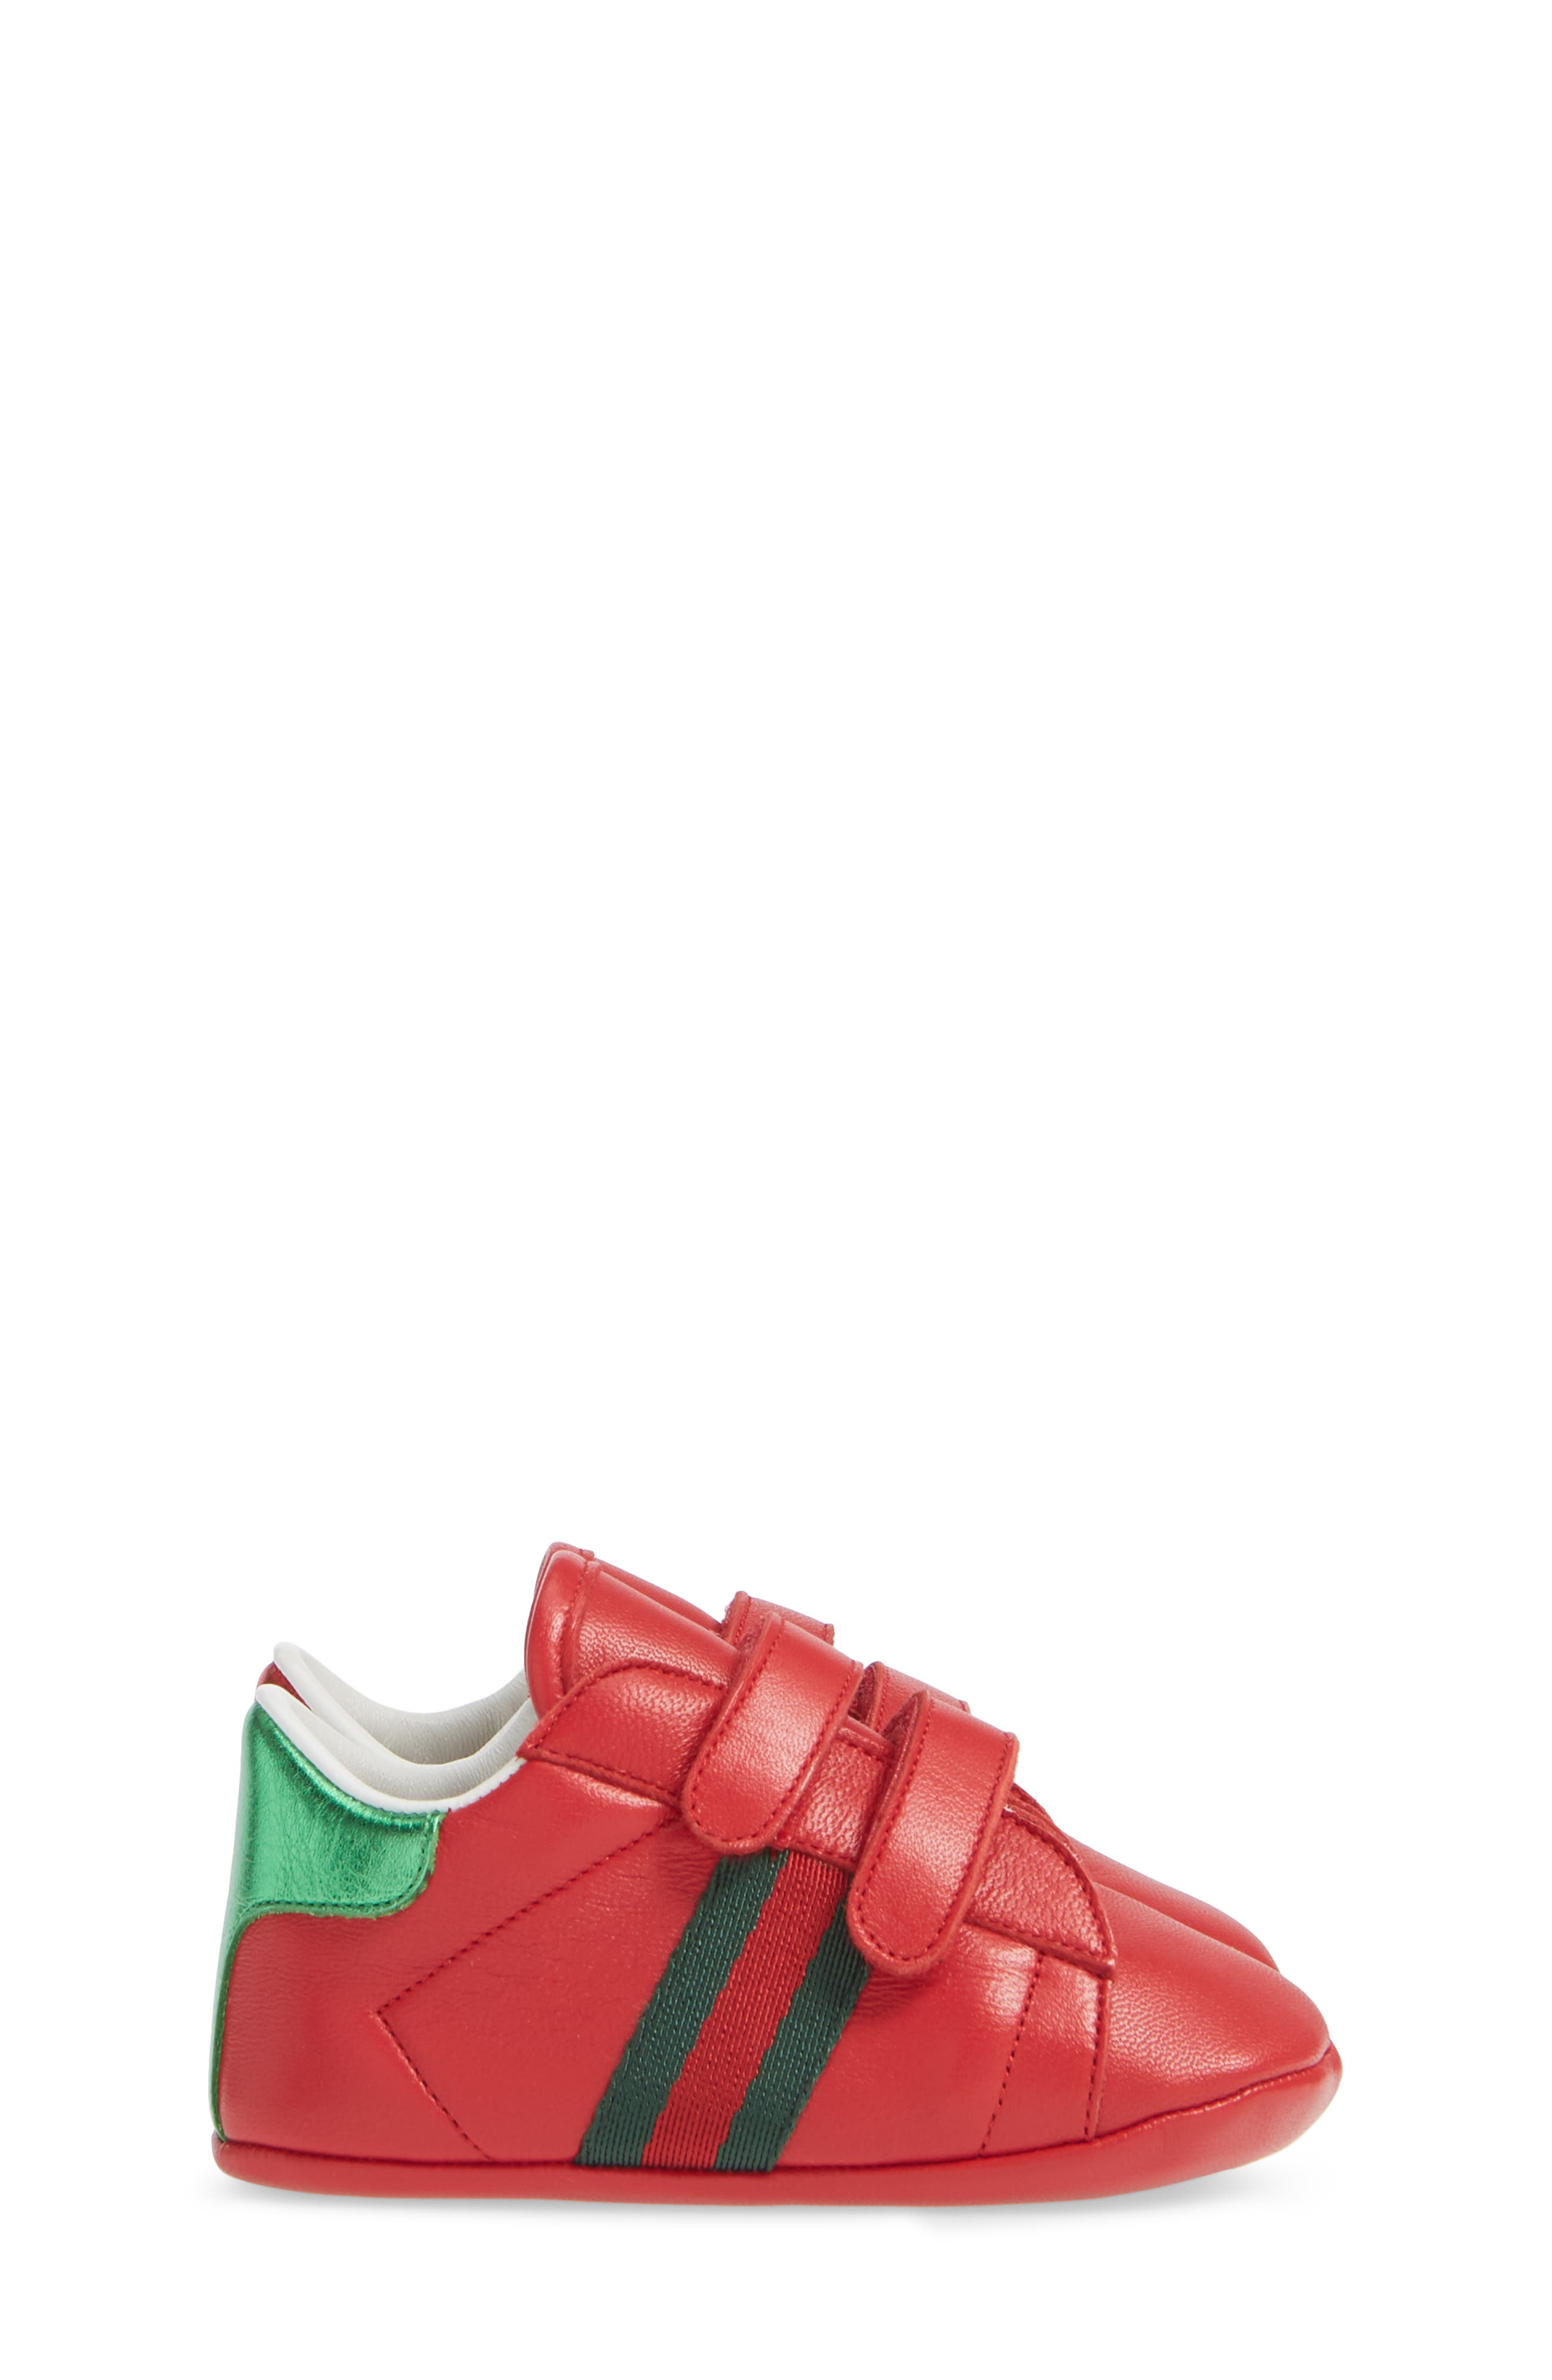 GUCCI,                             Ace Crib Shoe,                             Alternate thumbnail 4, color,                             RED